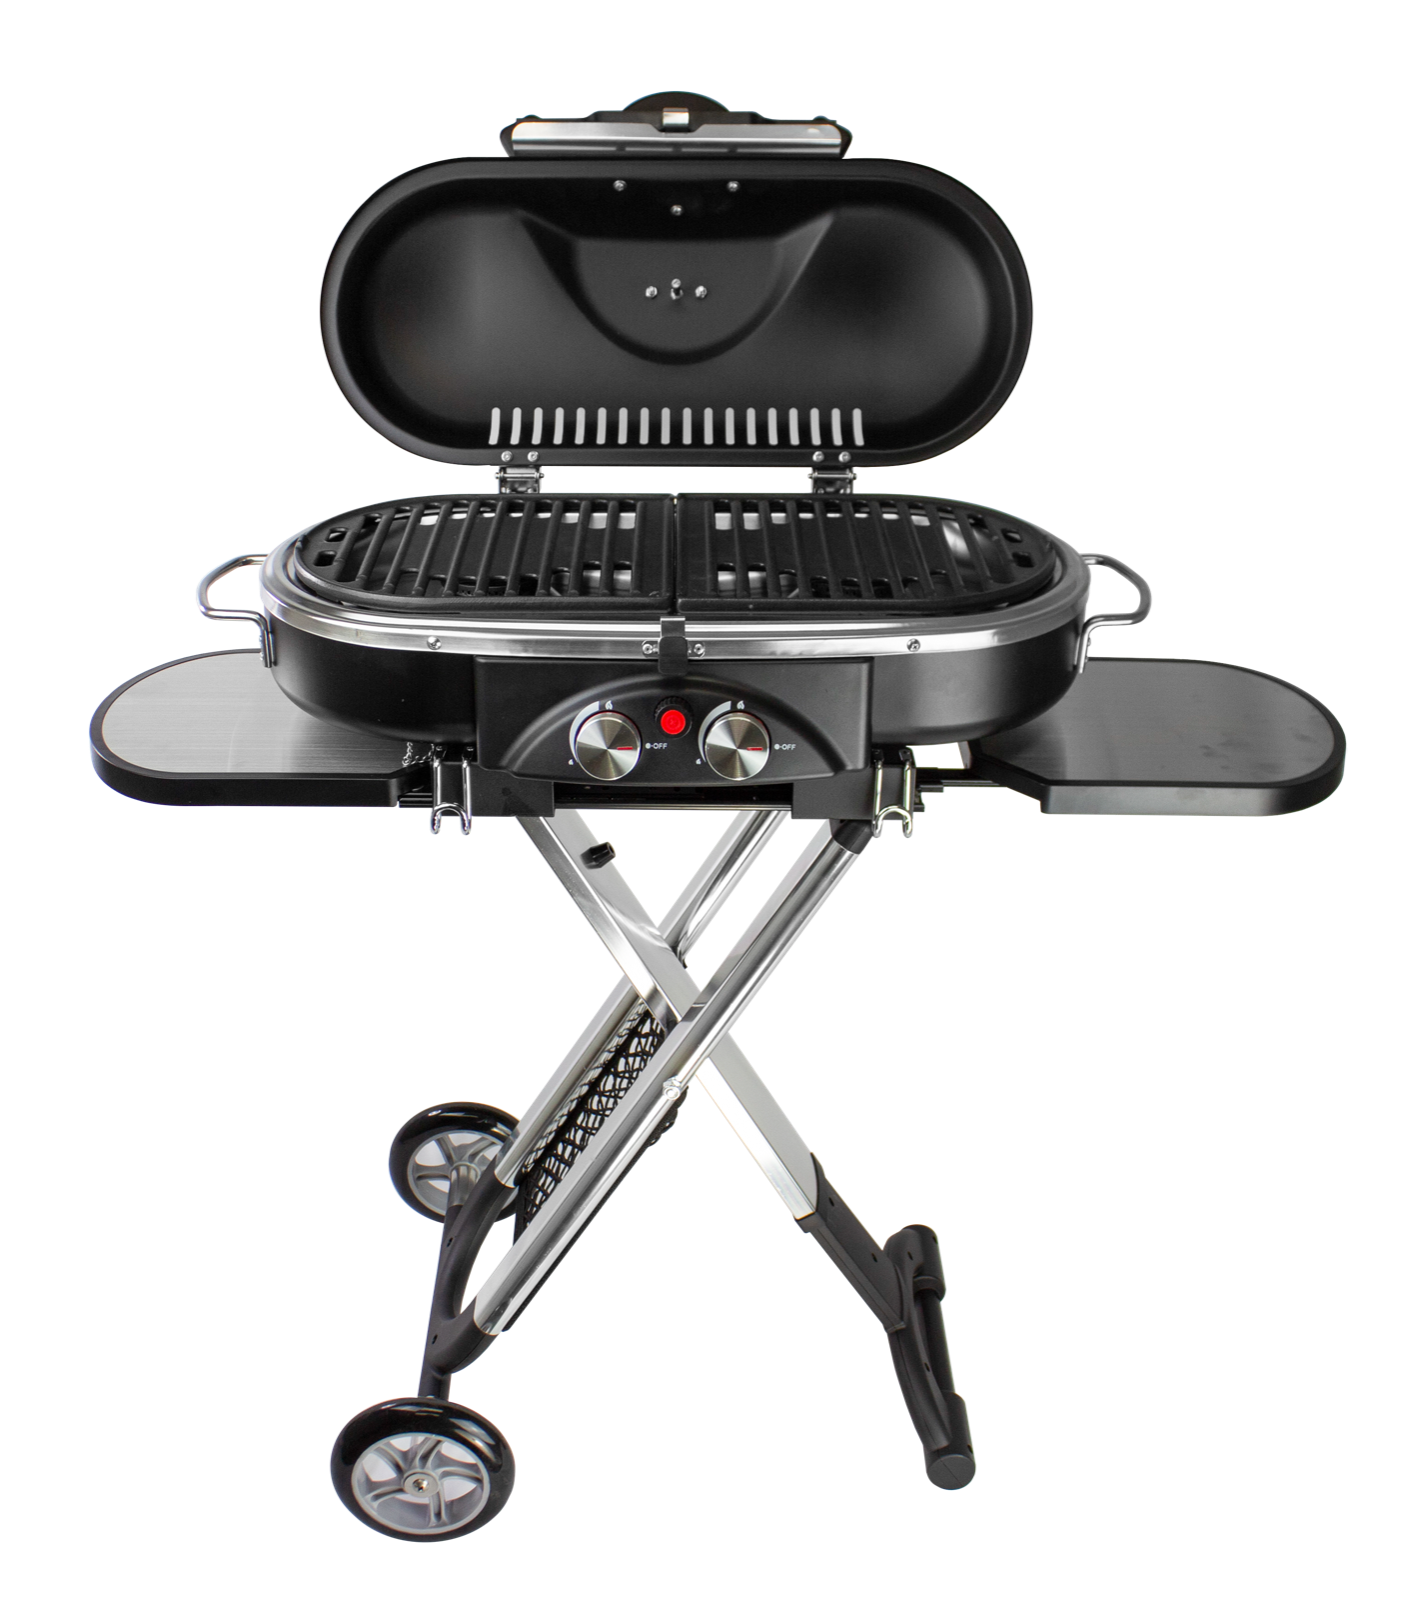 PORTABLE BBQ GRILL FOLDABLE CART CAMPING OUTDOOR PROPANE MAT